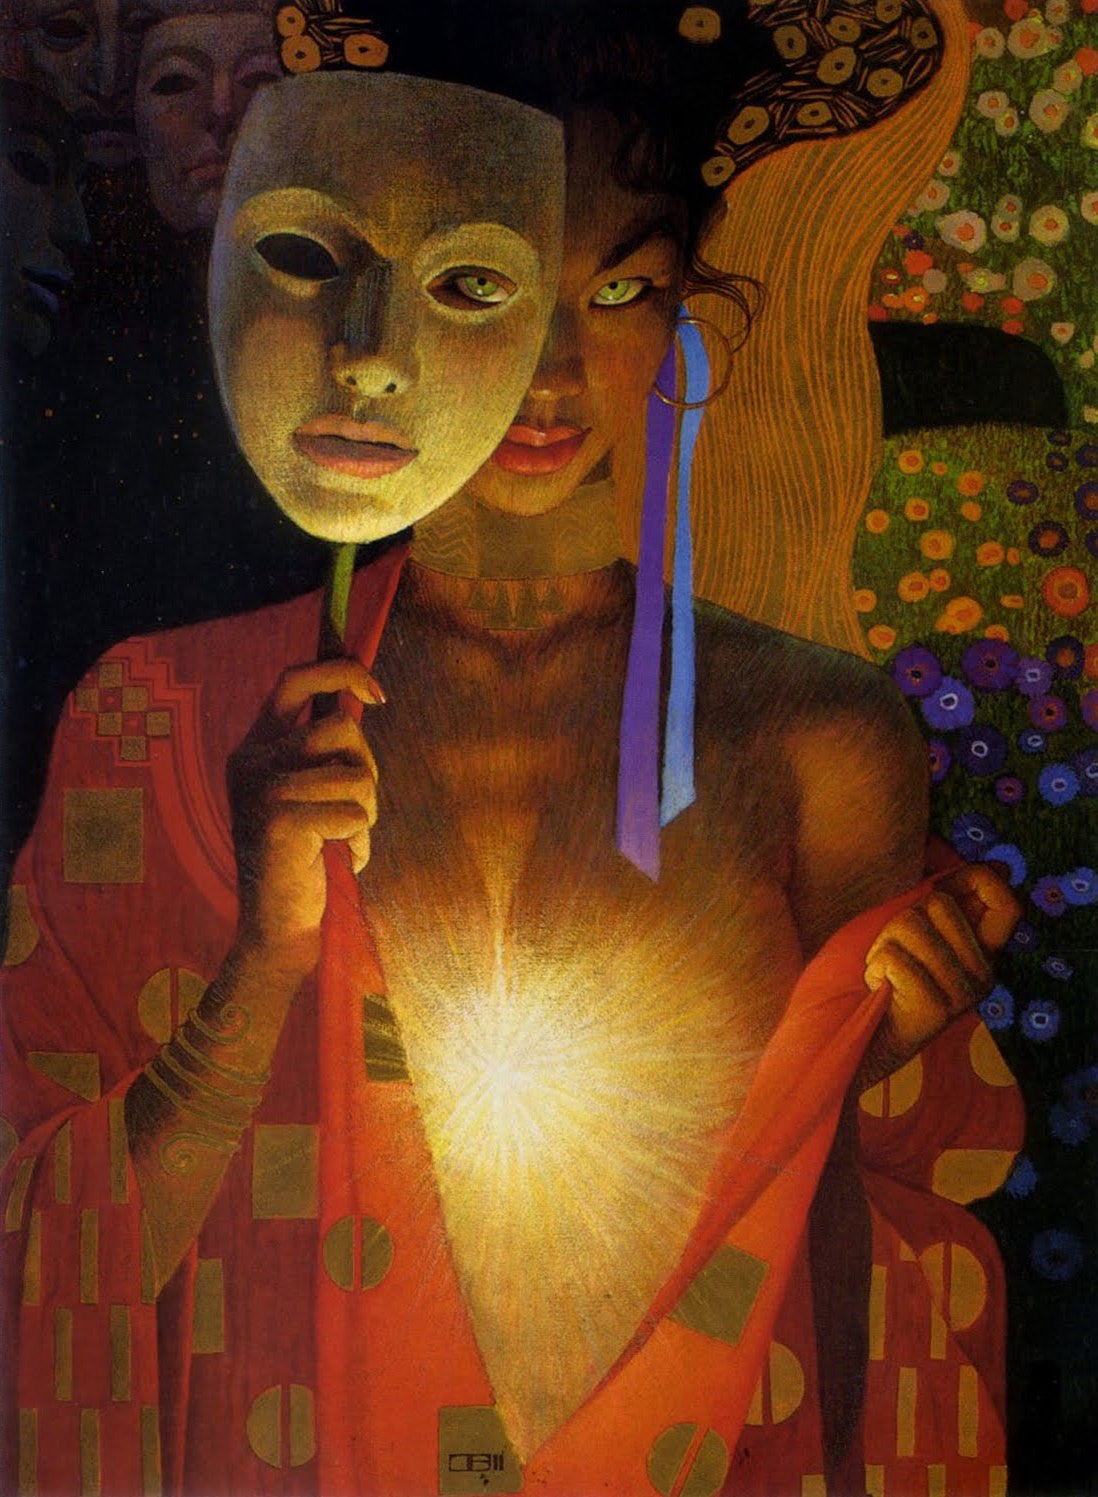 Intimacy by Thomas Blackshear